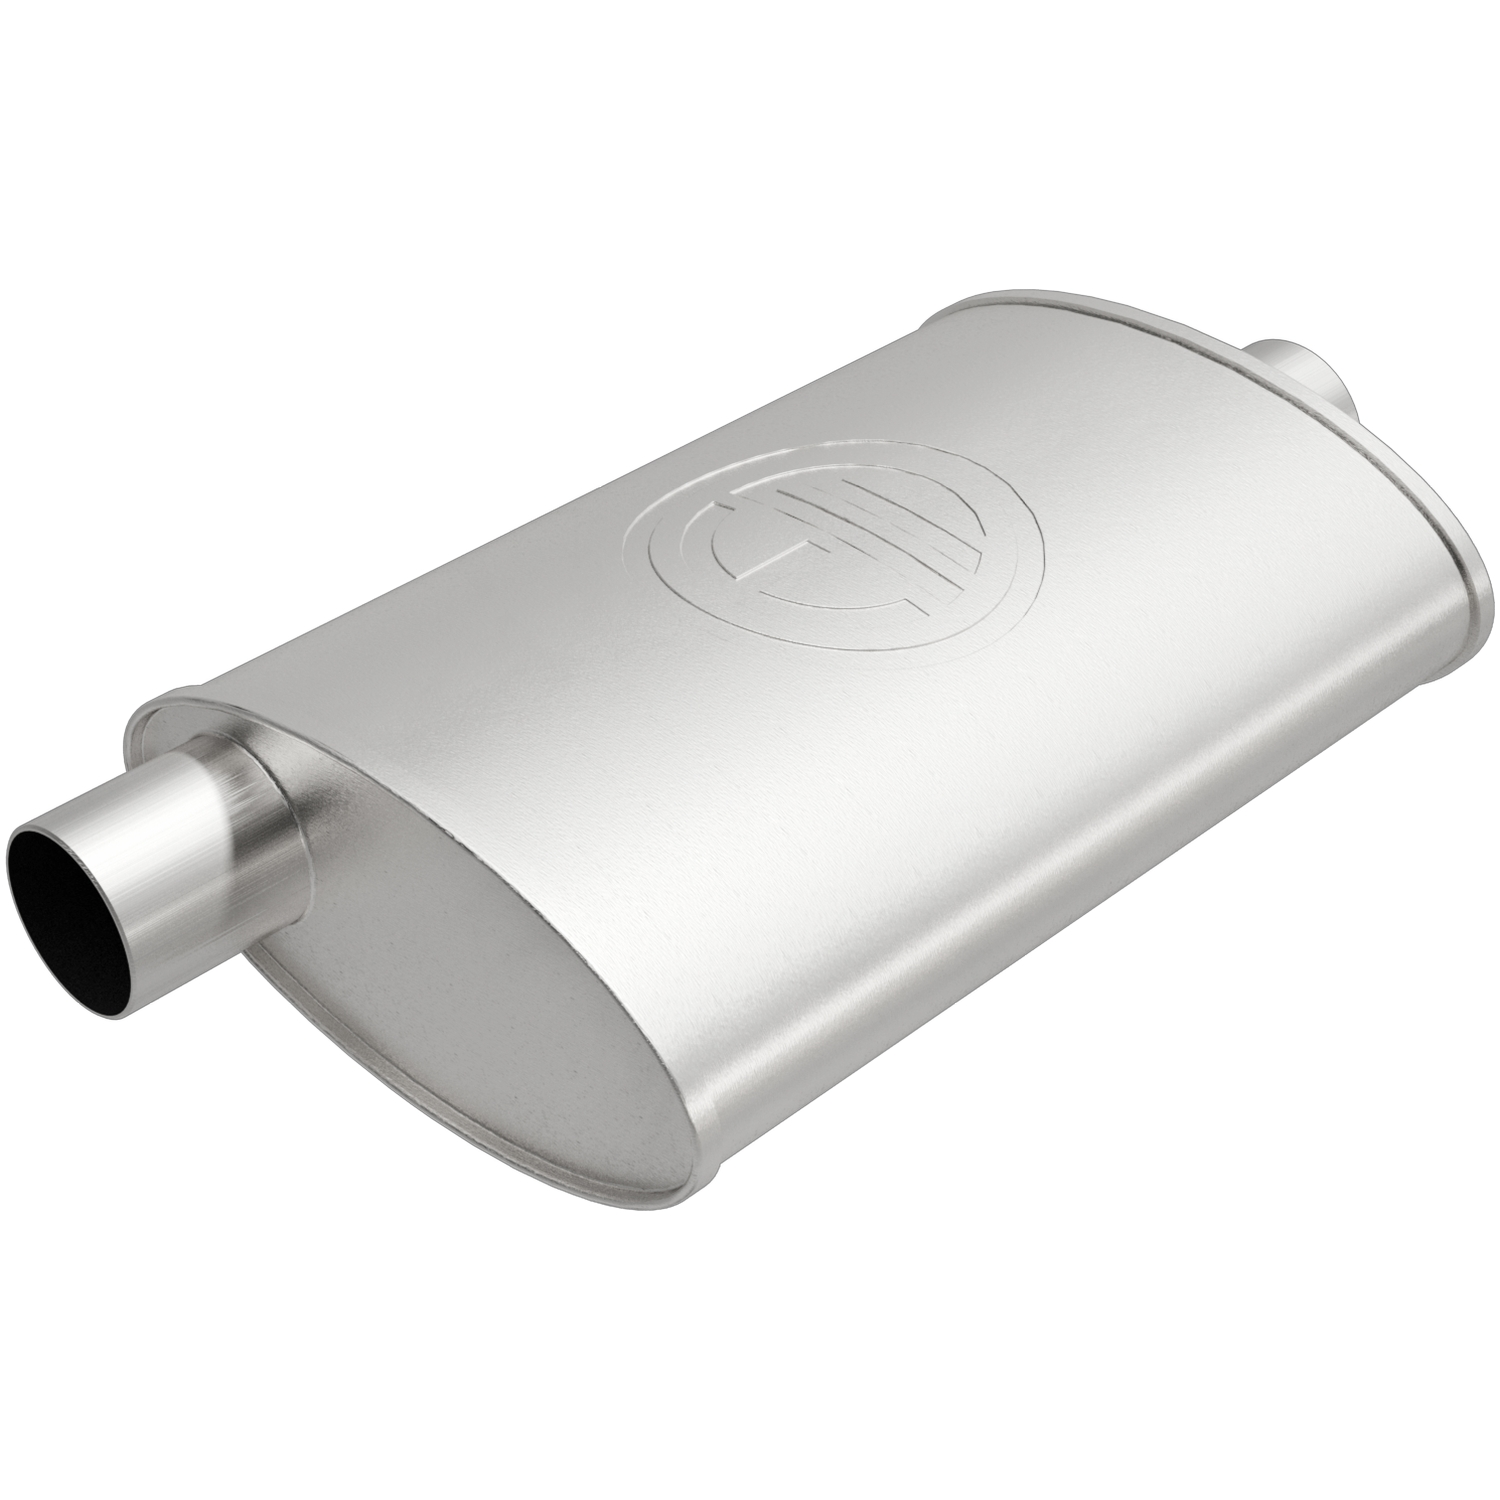 100-1779 Bosal USA Exhaust Muffler Aluminized Steel Case